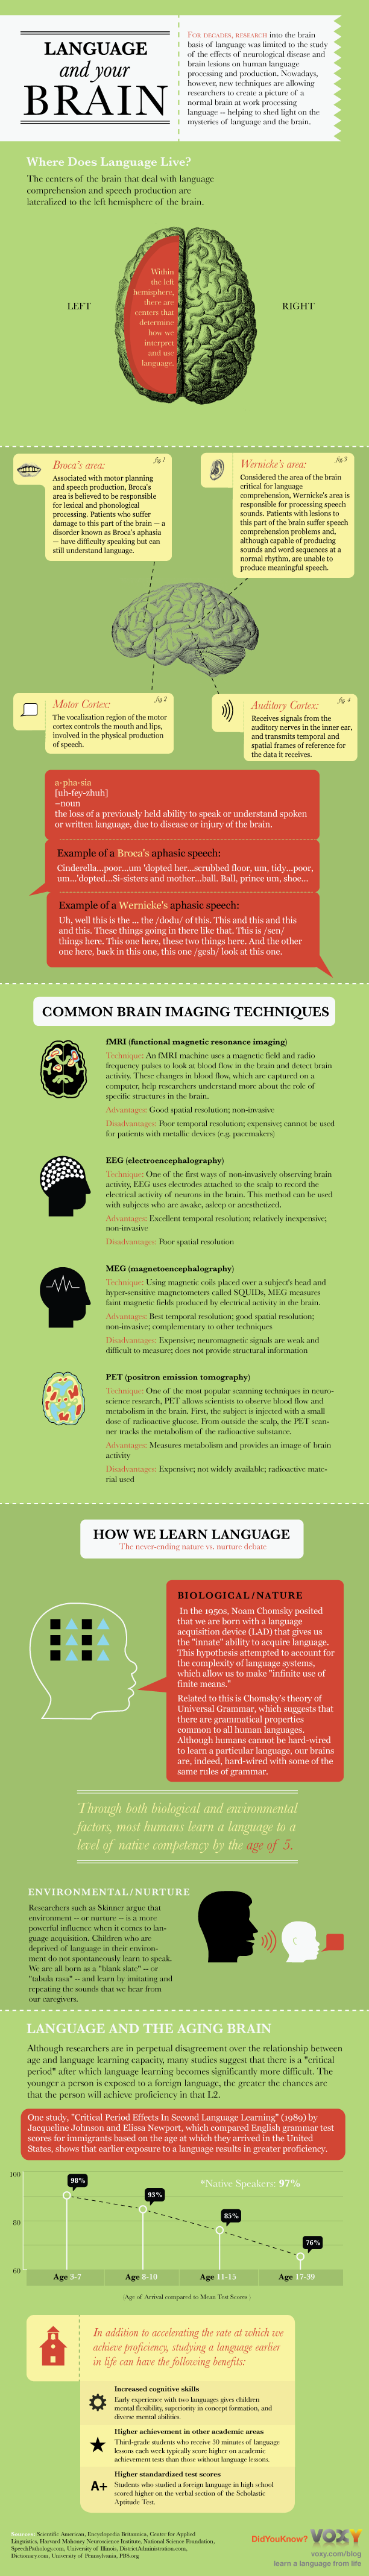 Infographic: Language and Your Brain - explains aphasia that can occur from a stroke or other brain injury